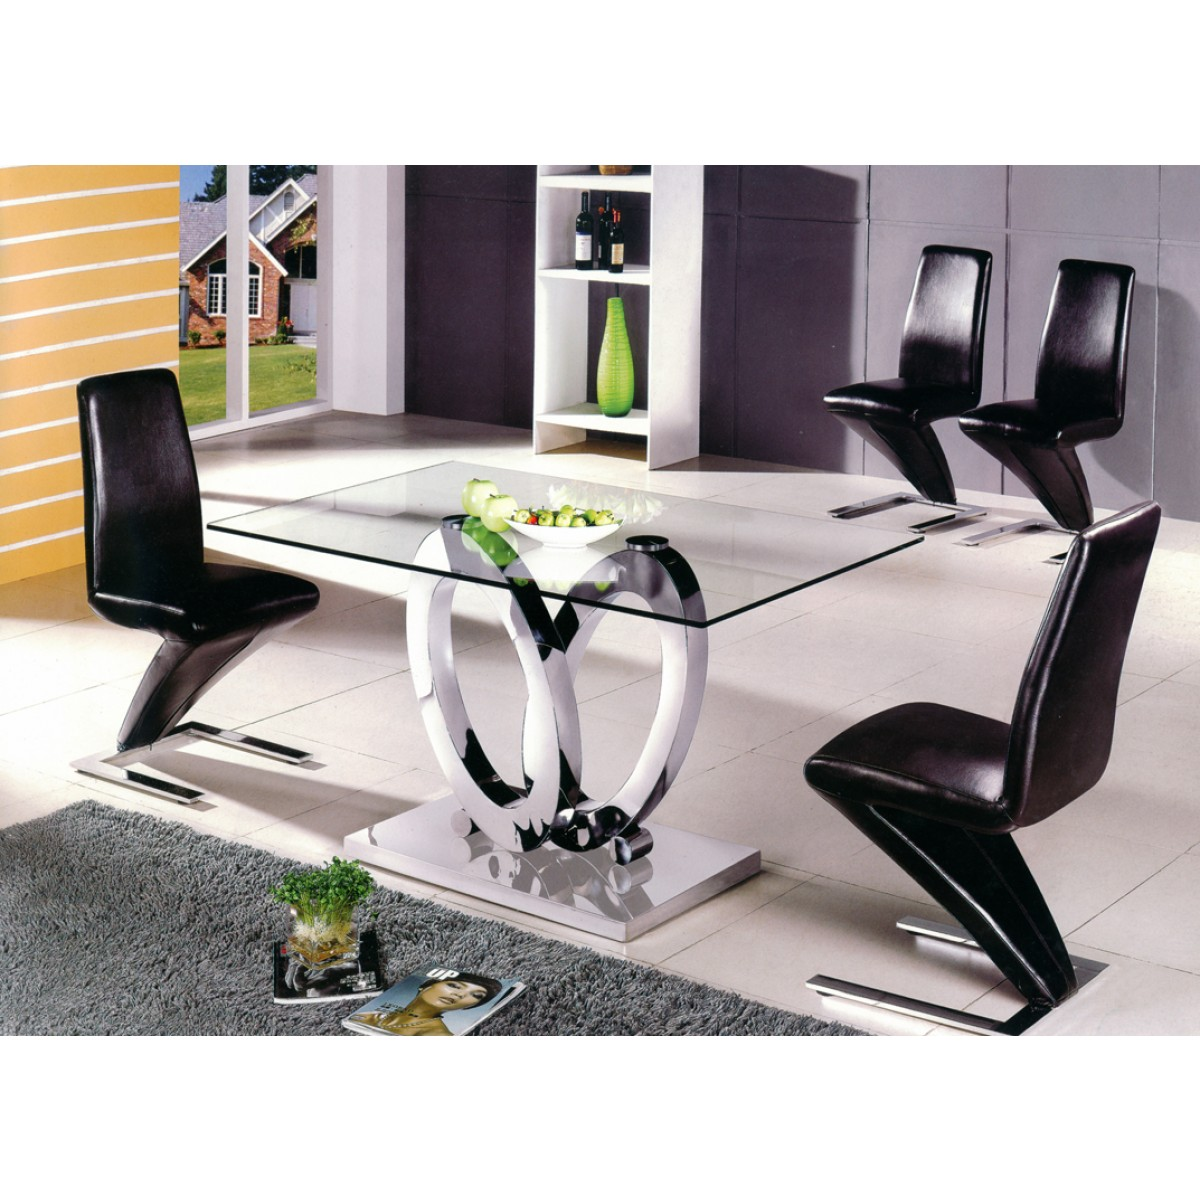 Table manger design ellipse taille au choix tables for Table de salle a manger design en verre